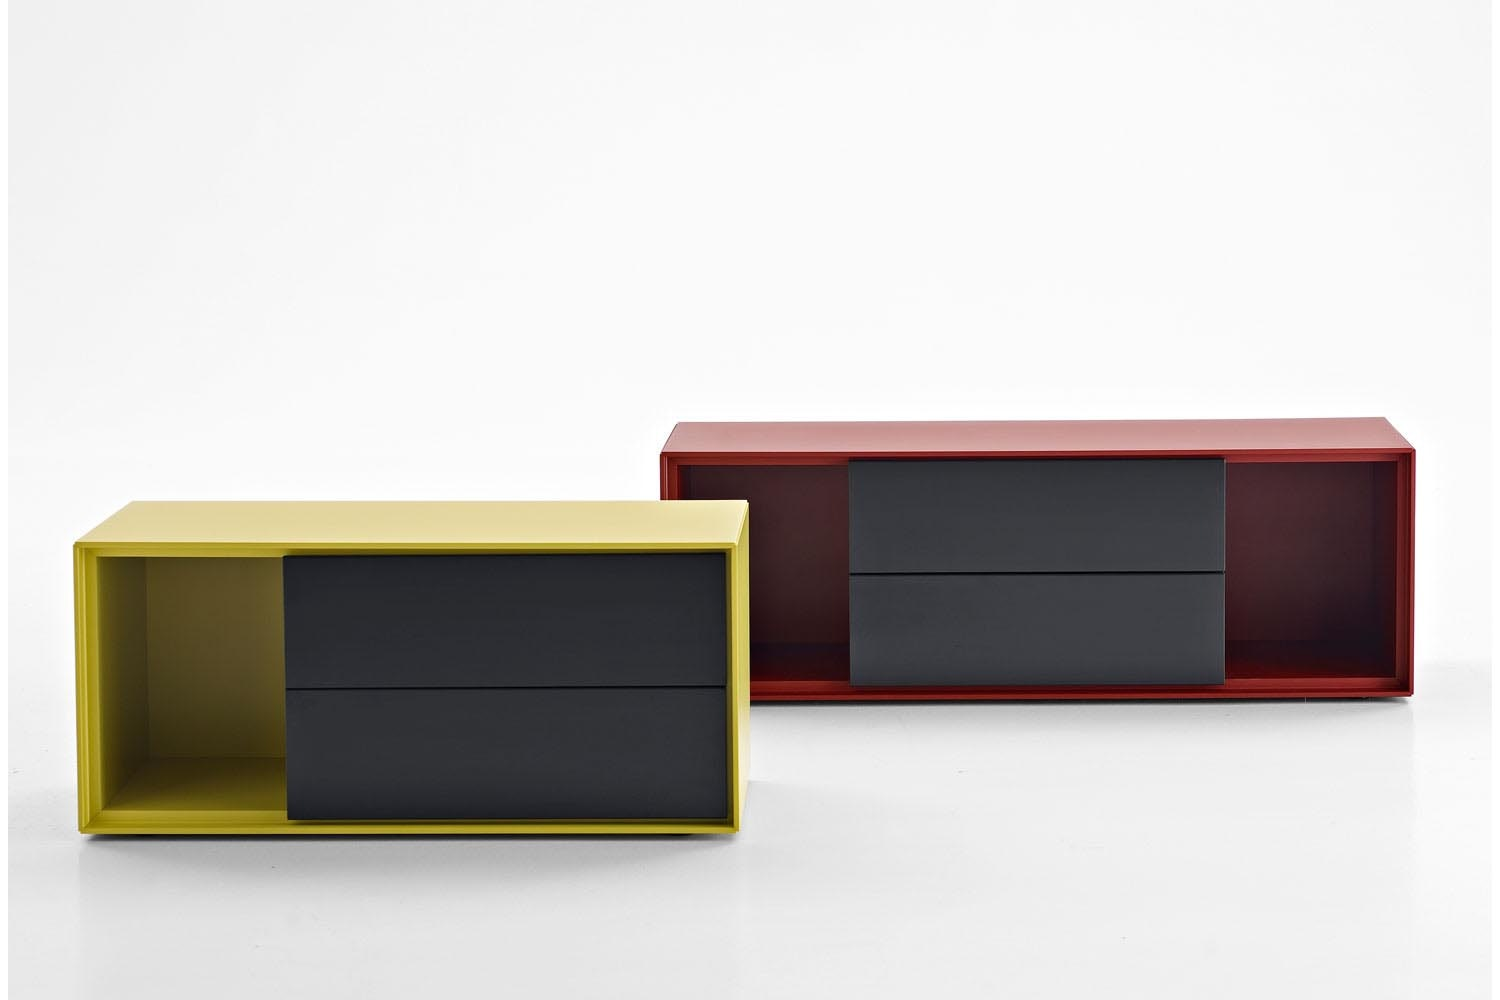 Dado 2013 Chest of Drawers by Studio Kairos for B&B Italia